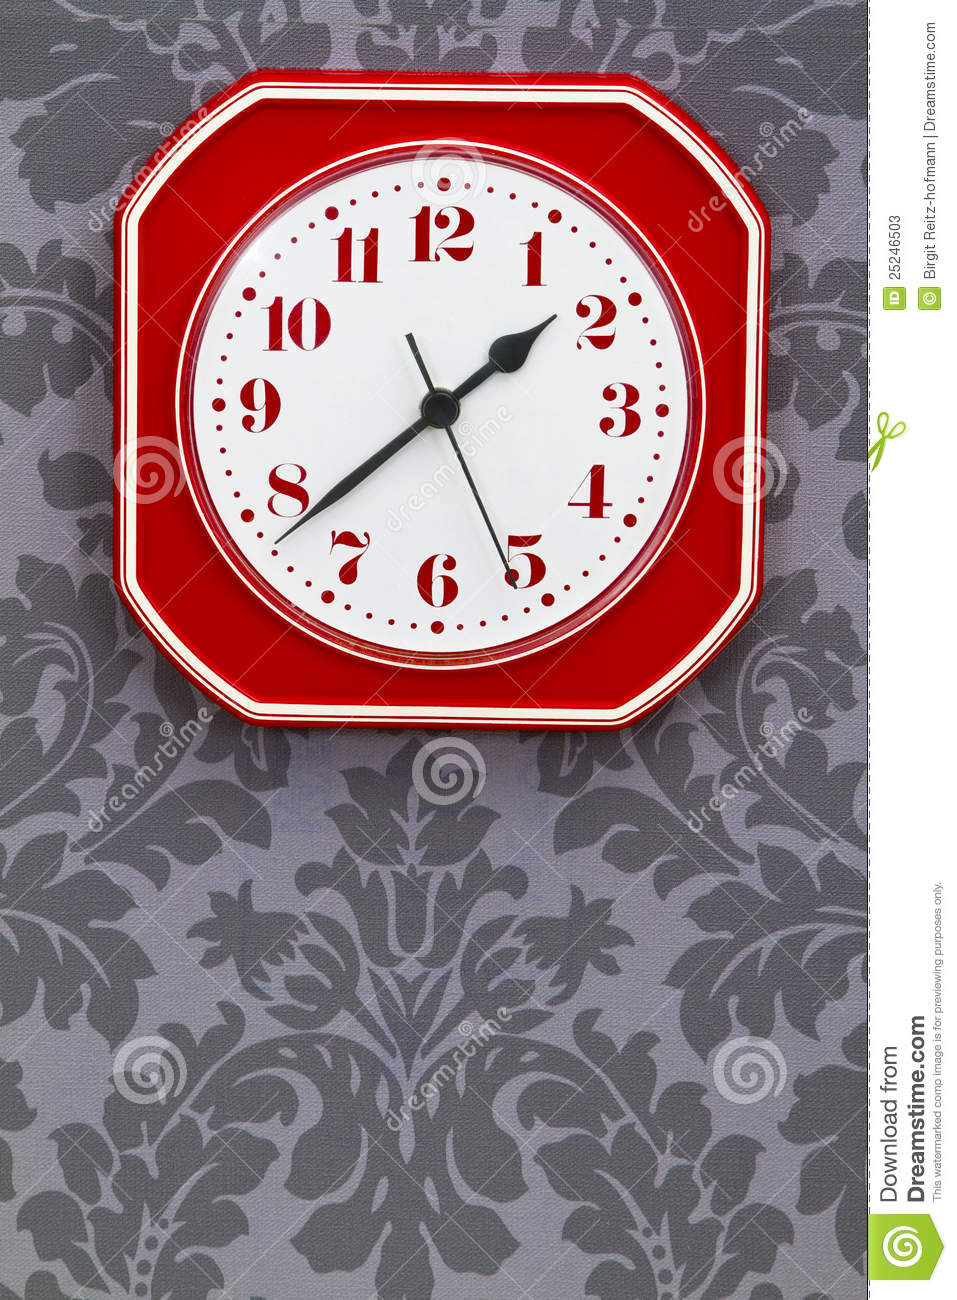 horloge rouge de cuisine de cru photos stock image 25246503. Black Bedroom Furniture Sets. Home Design Ideas